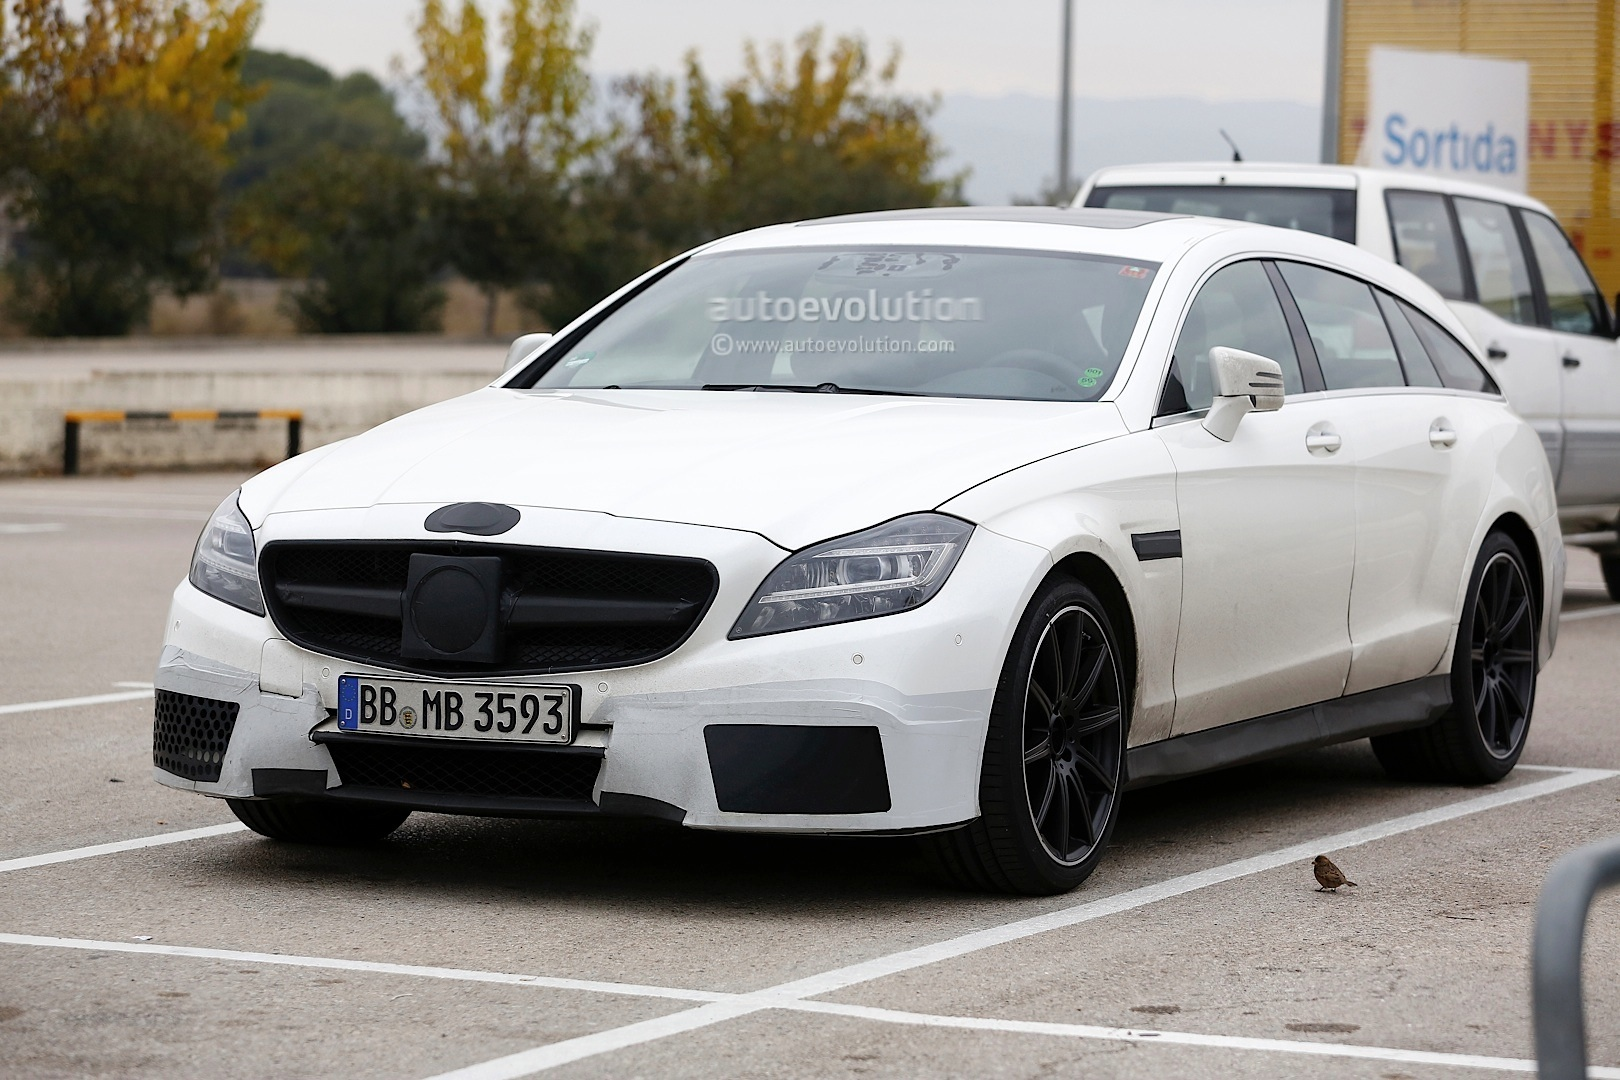 2015 cls 63 amg s model shooting brake facelift spied. Black Bedroom Furniture Sets. Home Design Ideas